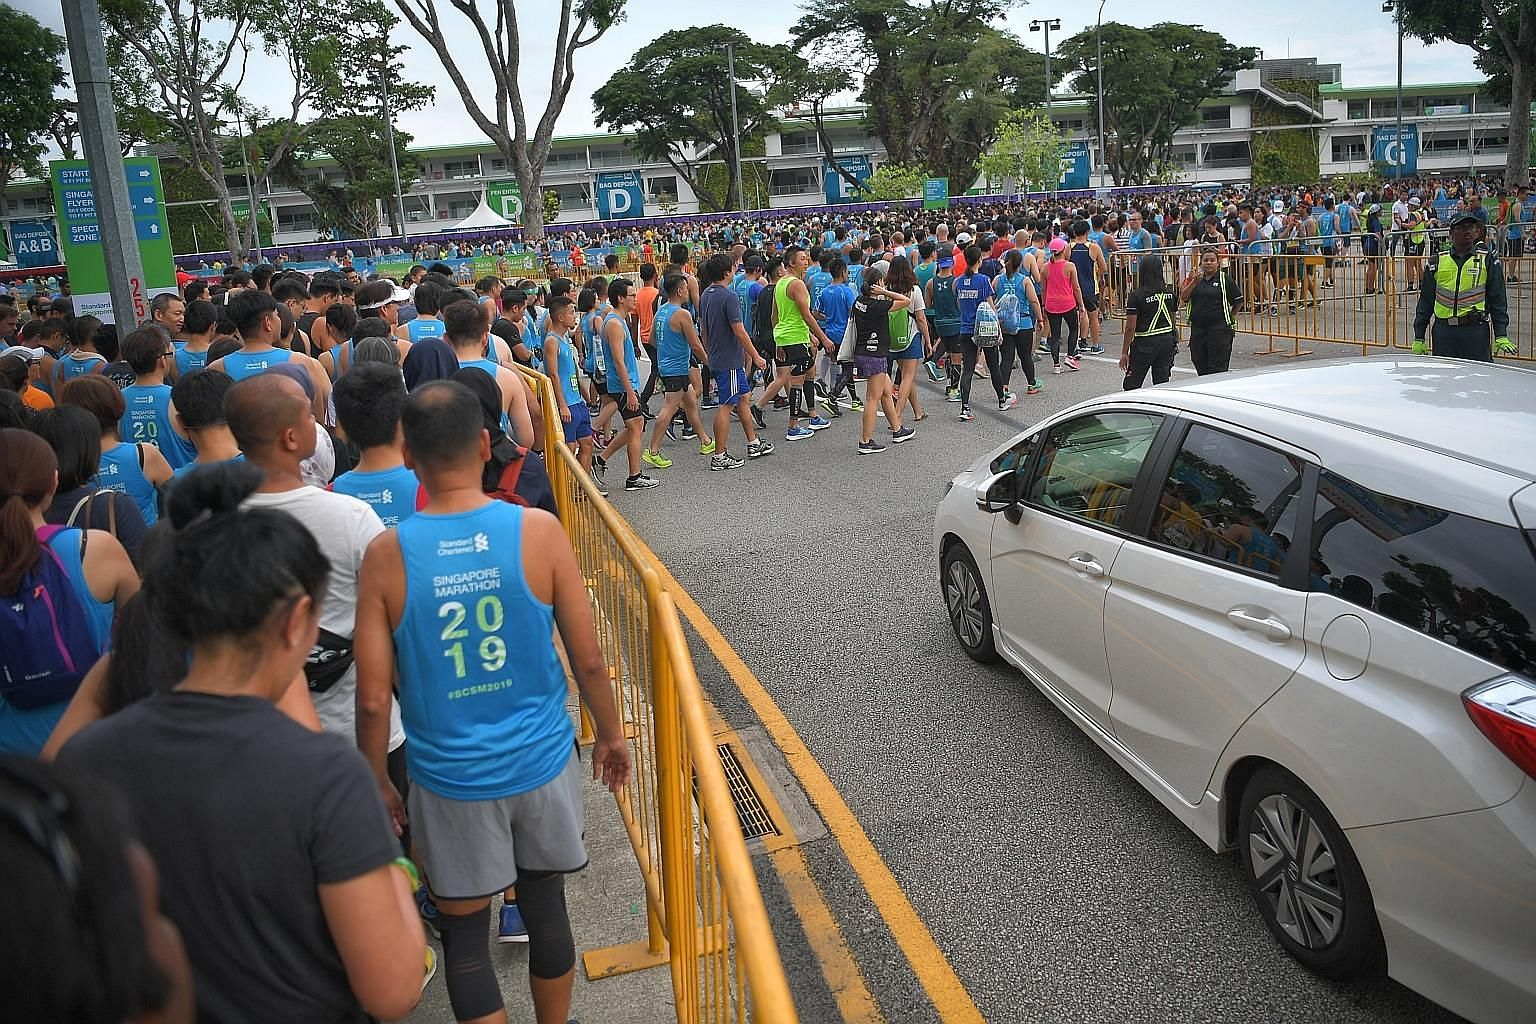 The crowd at Raffles Boulevard heading to the F1 Pit Building to start the Standard Chartered Singapore Marathon last Saturday. ST PHOTO: ARIFFIN JAMAR